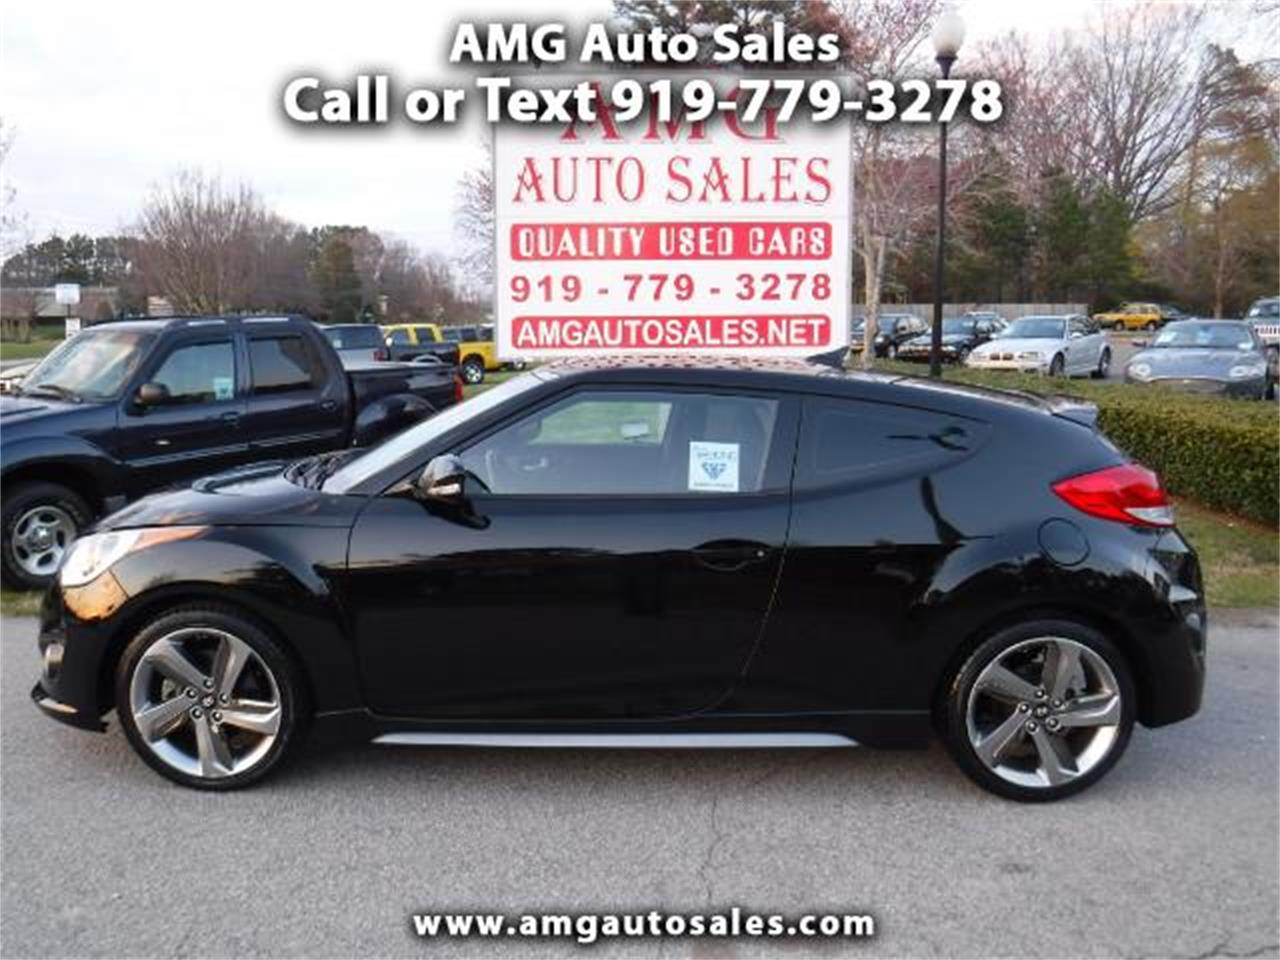 Large Picture of 2014 Veloster located in North Carolina - $11,450.00 - MZ8P